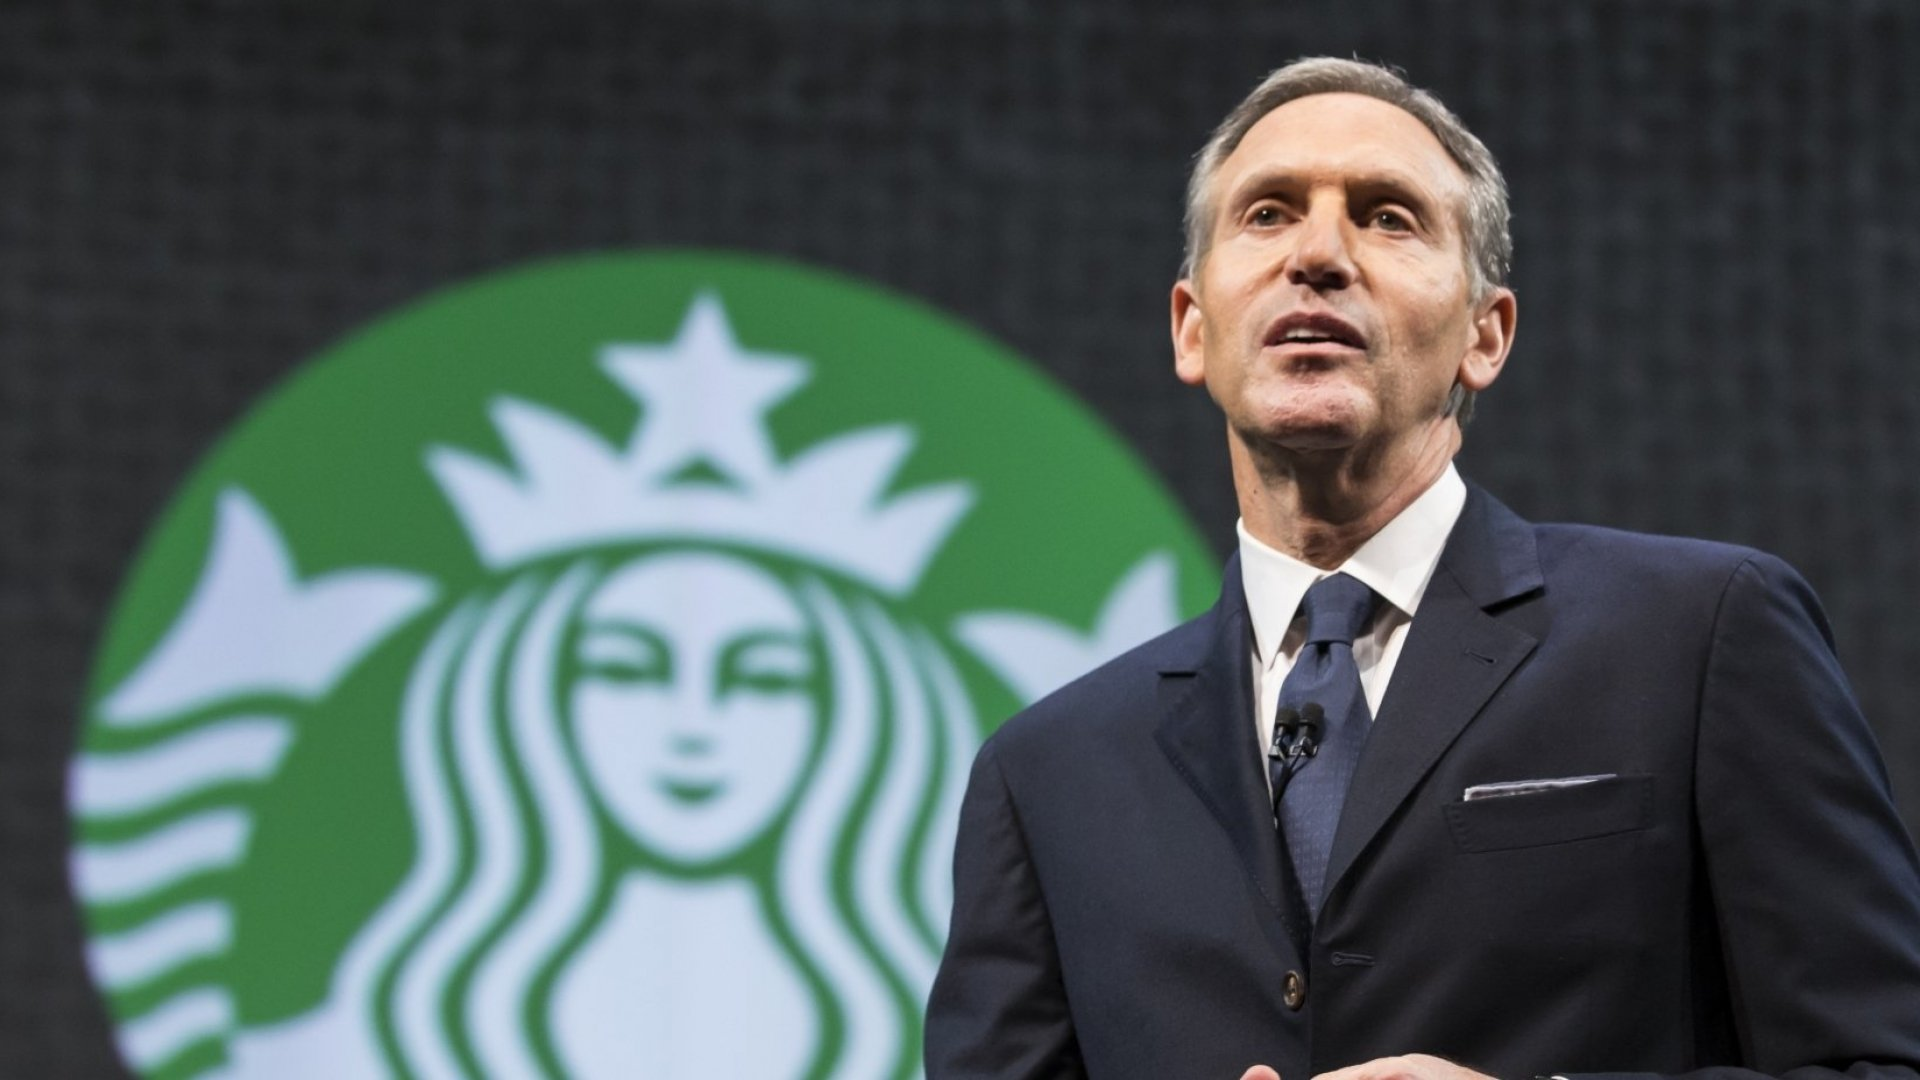 These 3 Emails--From the CEOs of Starbucks, Microsoft, and Amazon--Teach Extraordinary Lessons in Leadership